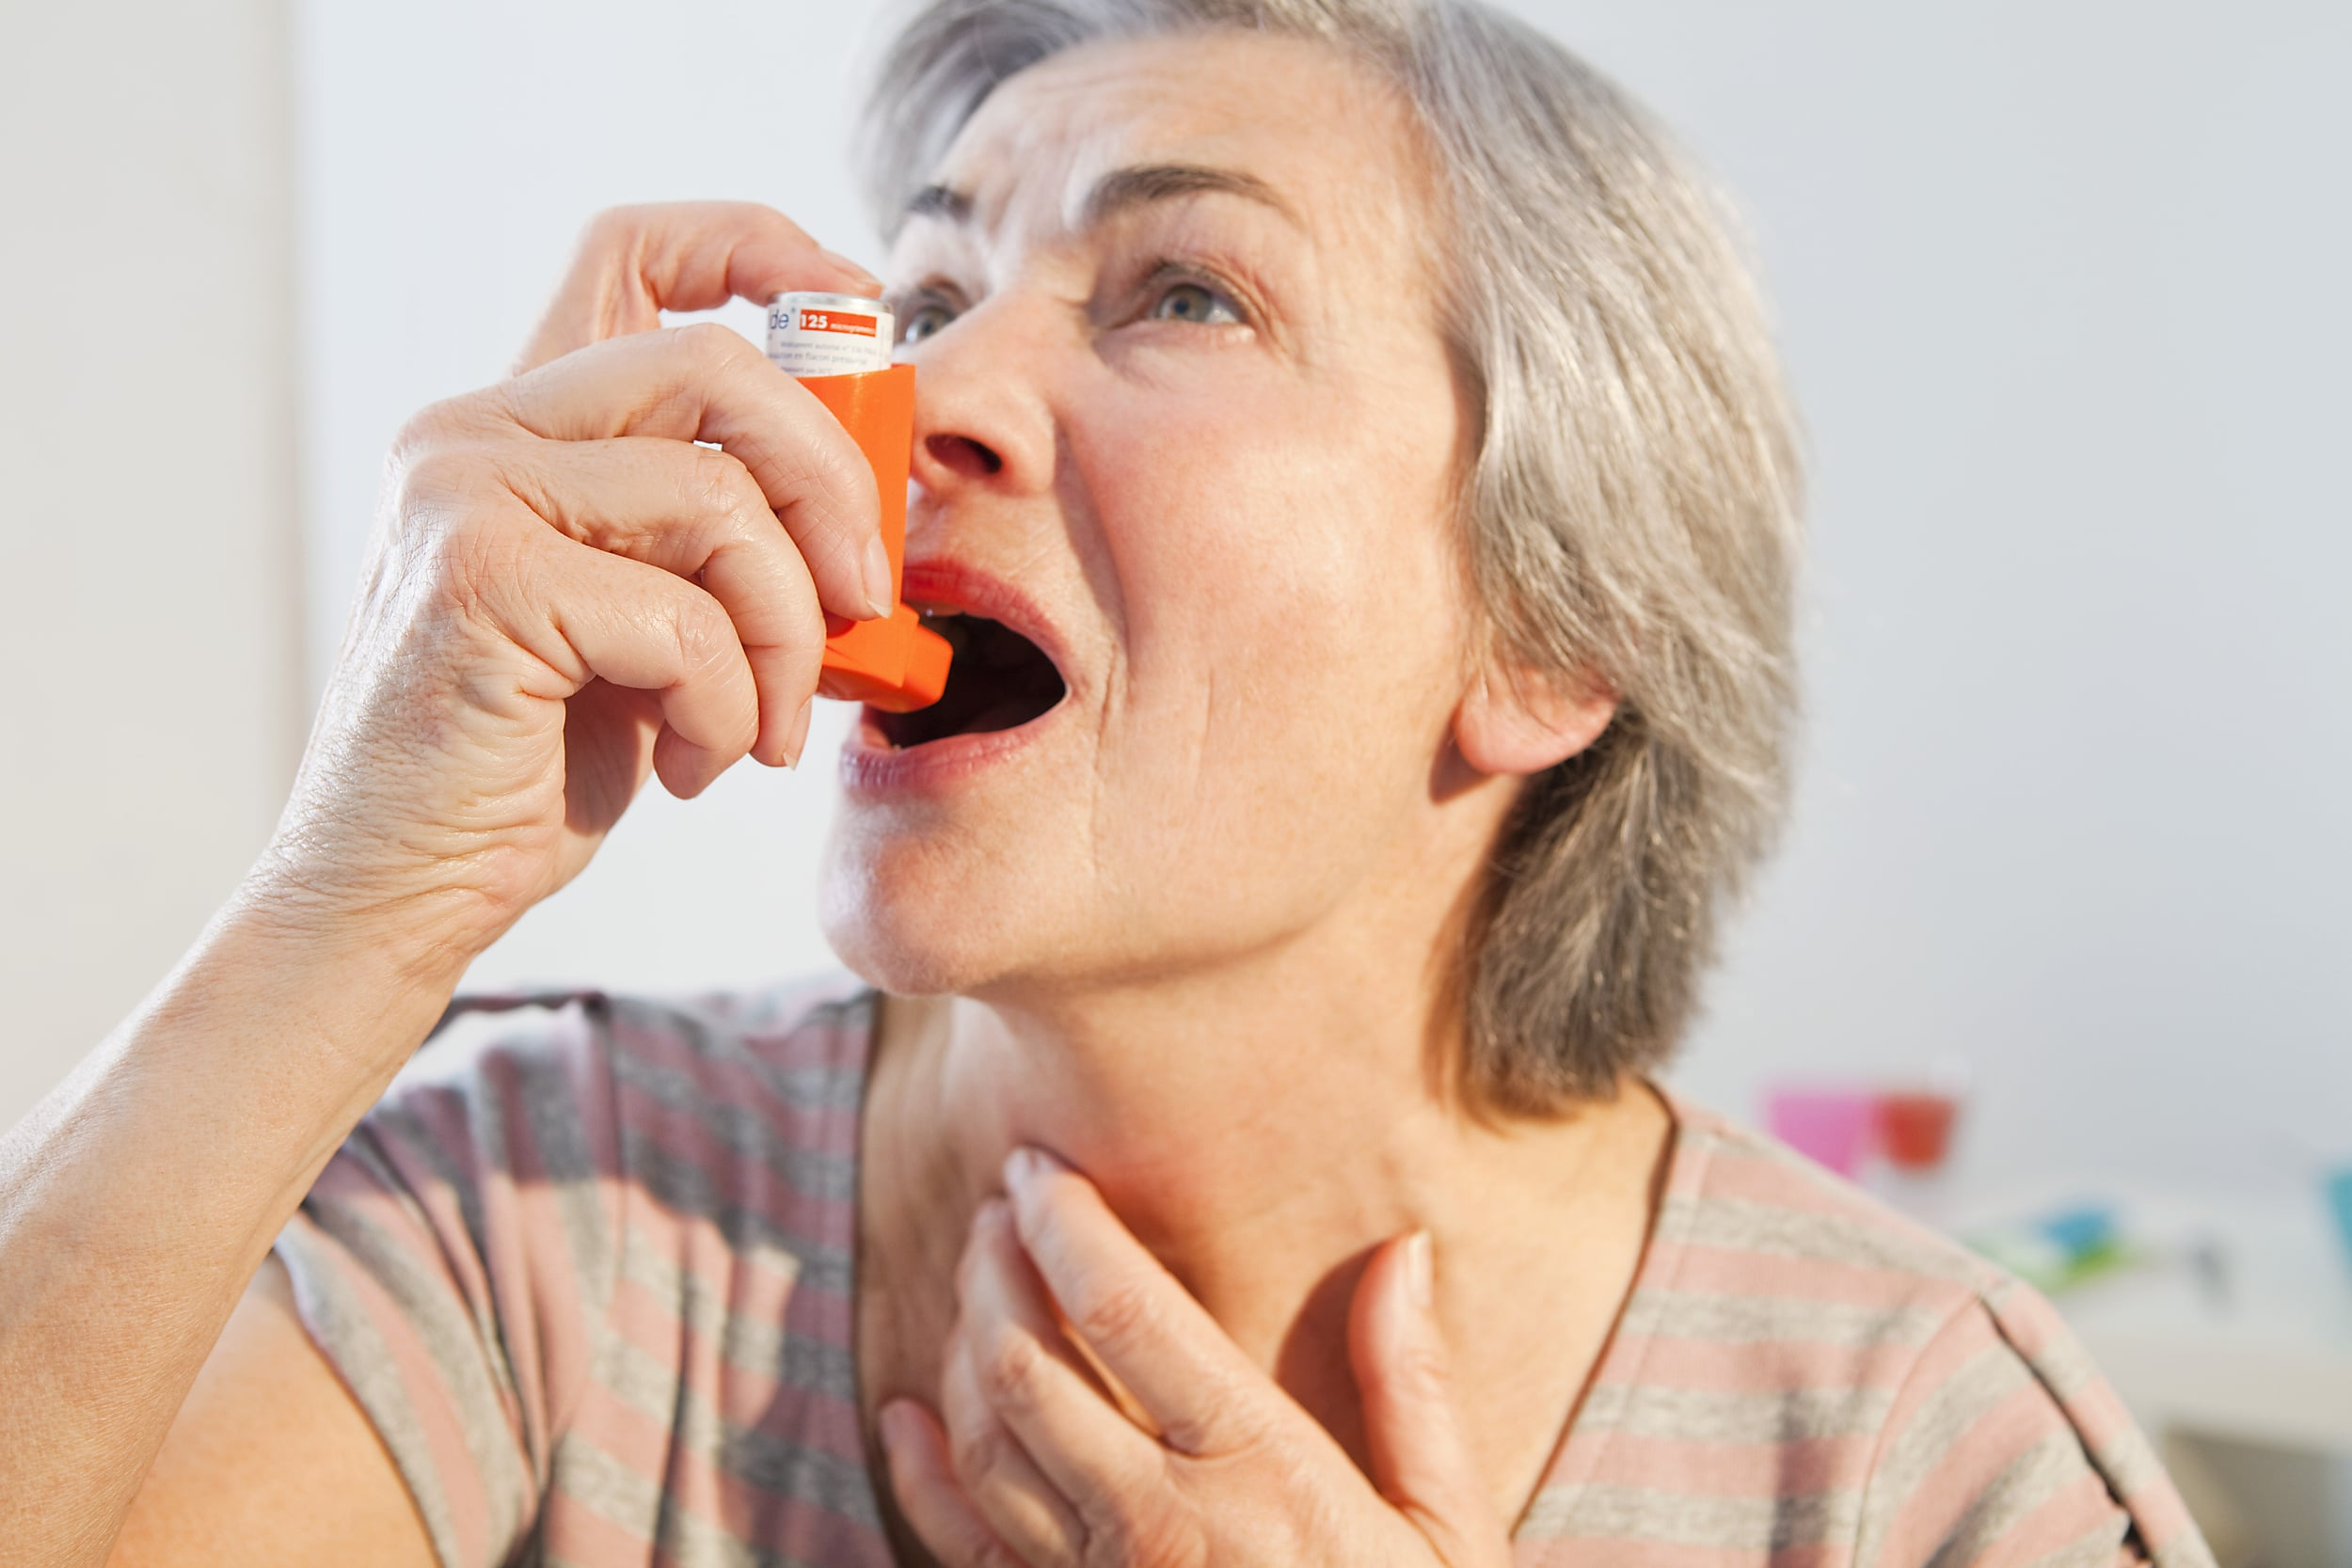 For caregivers of elderly with Asthma or COPD, we know that being sure that they are using inhalers properly can be challenging.